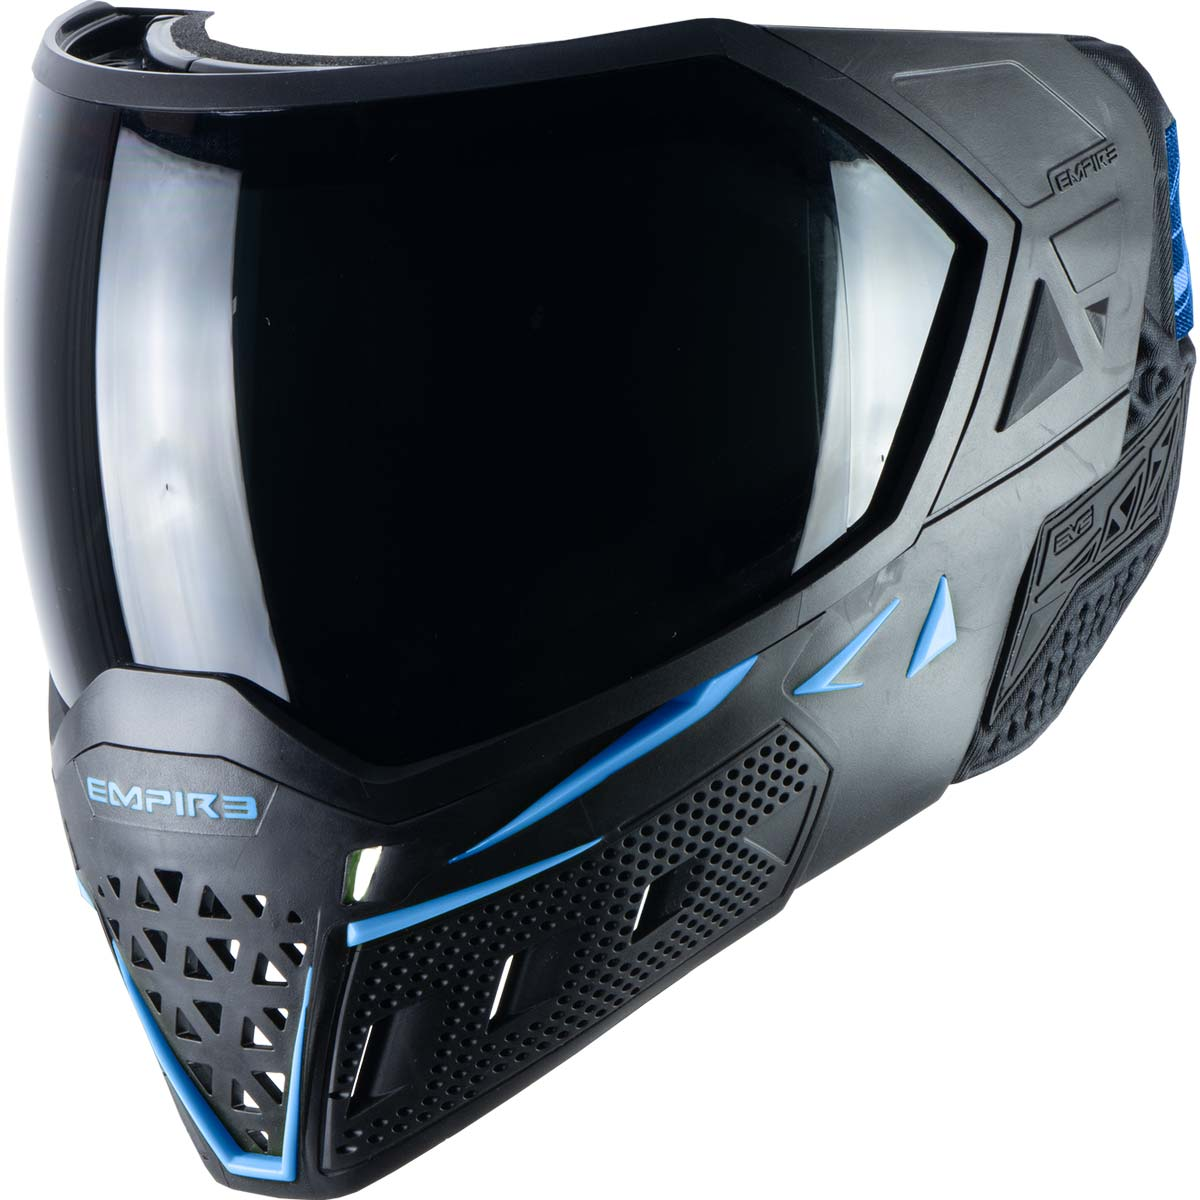 Empire EVS Paintball Mask Black Navy Blue with Extra Lens